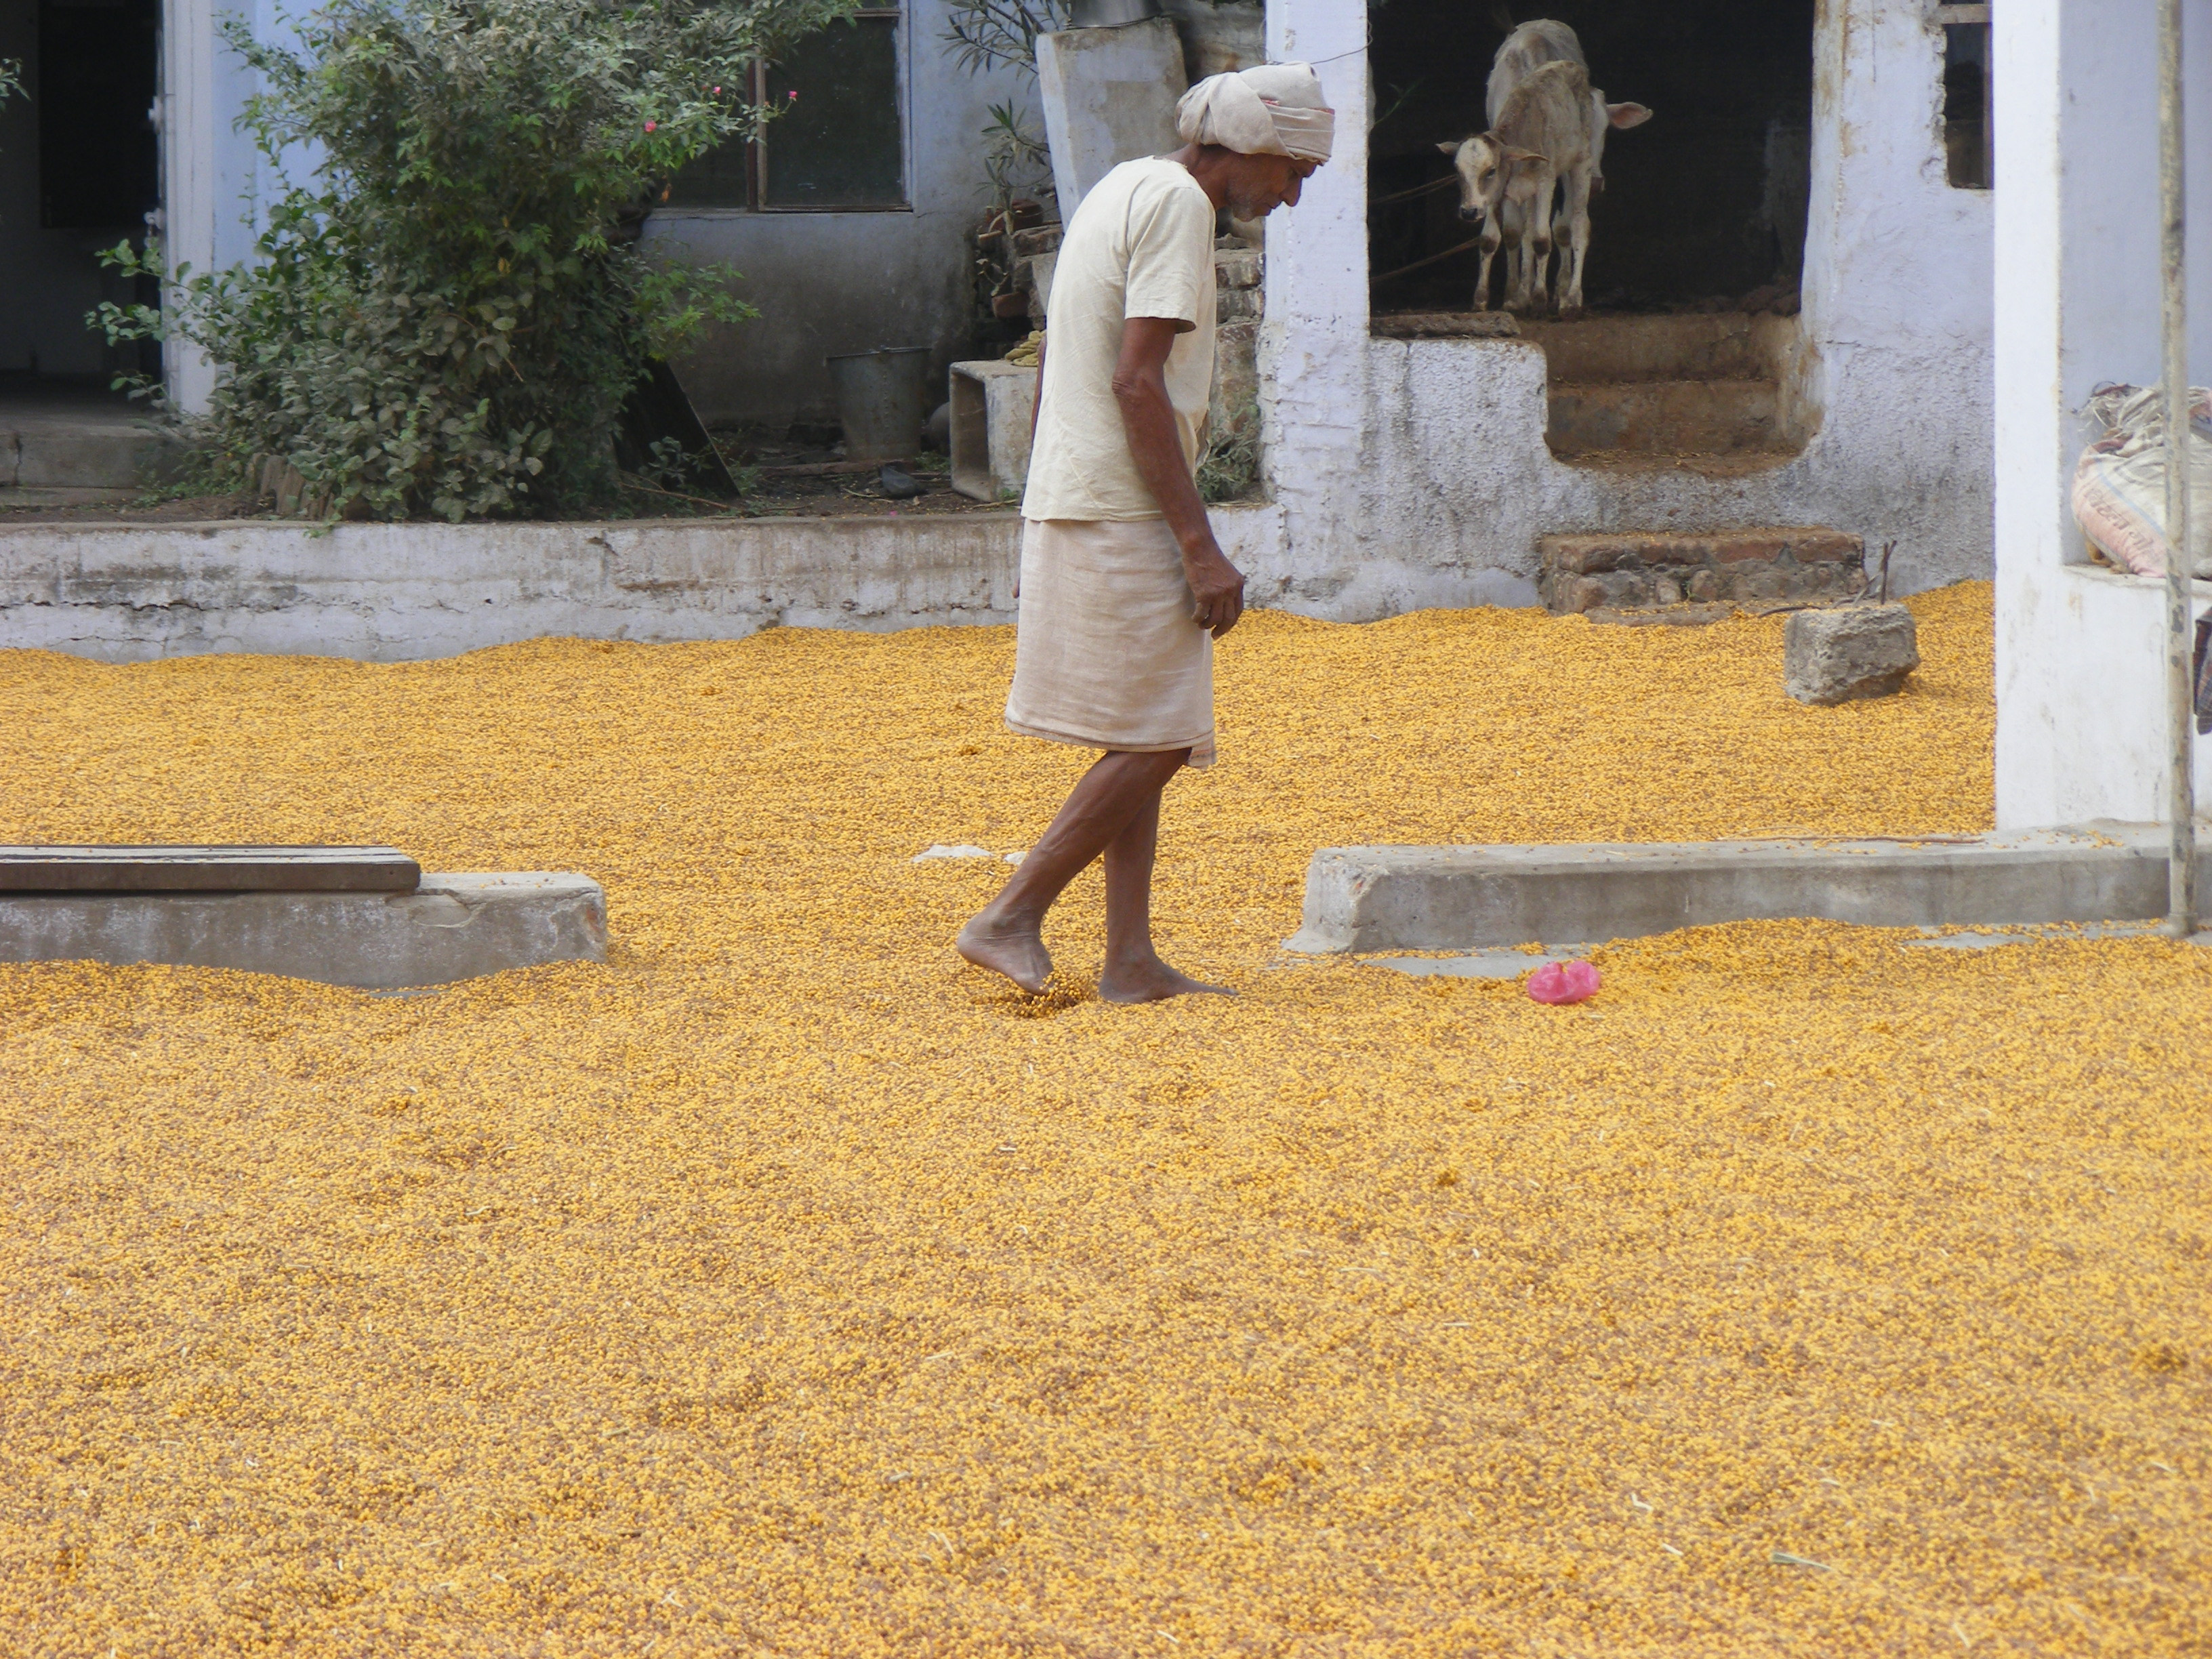 Tuar (Pigeon Pea) being dried out